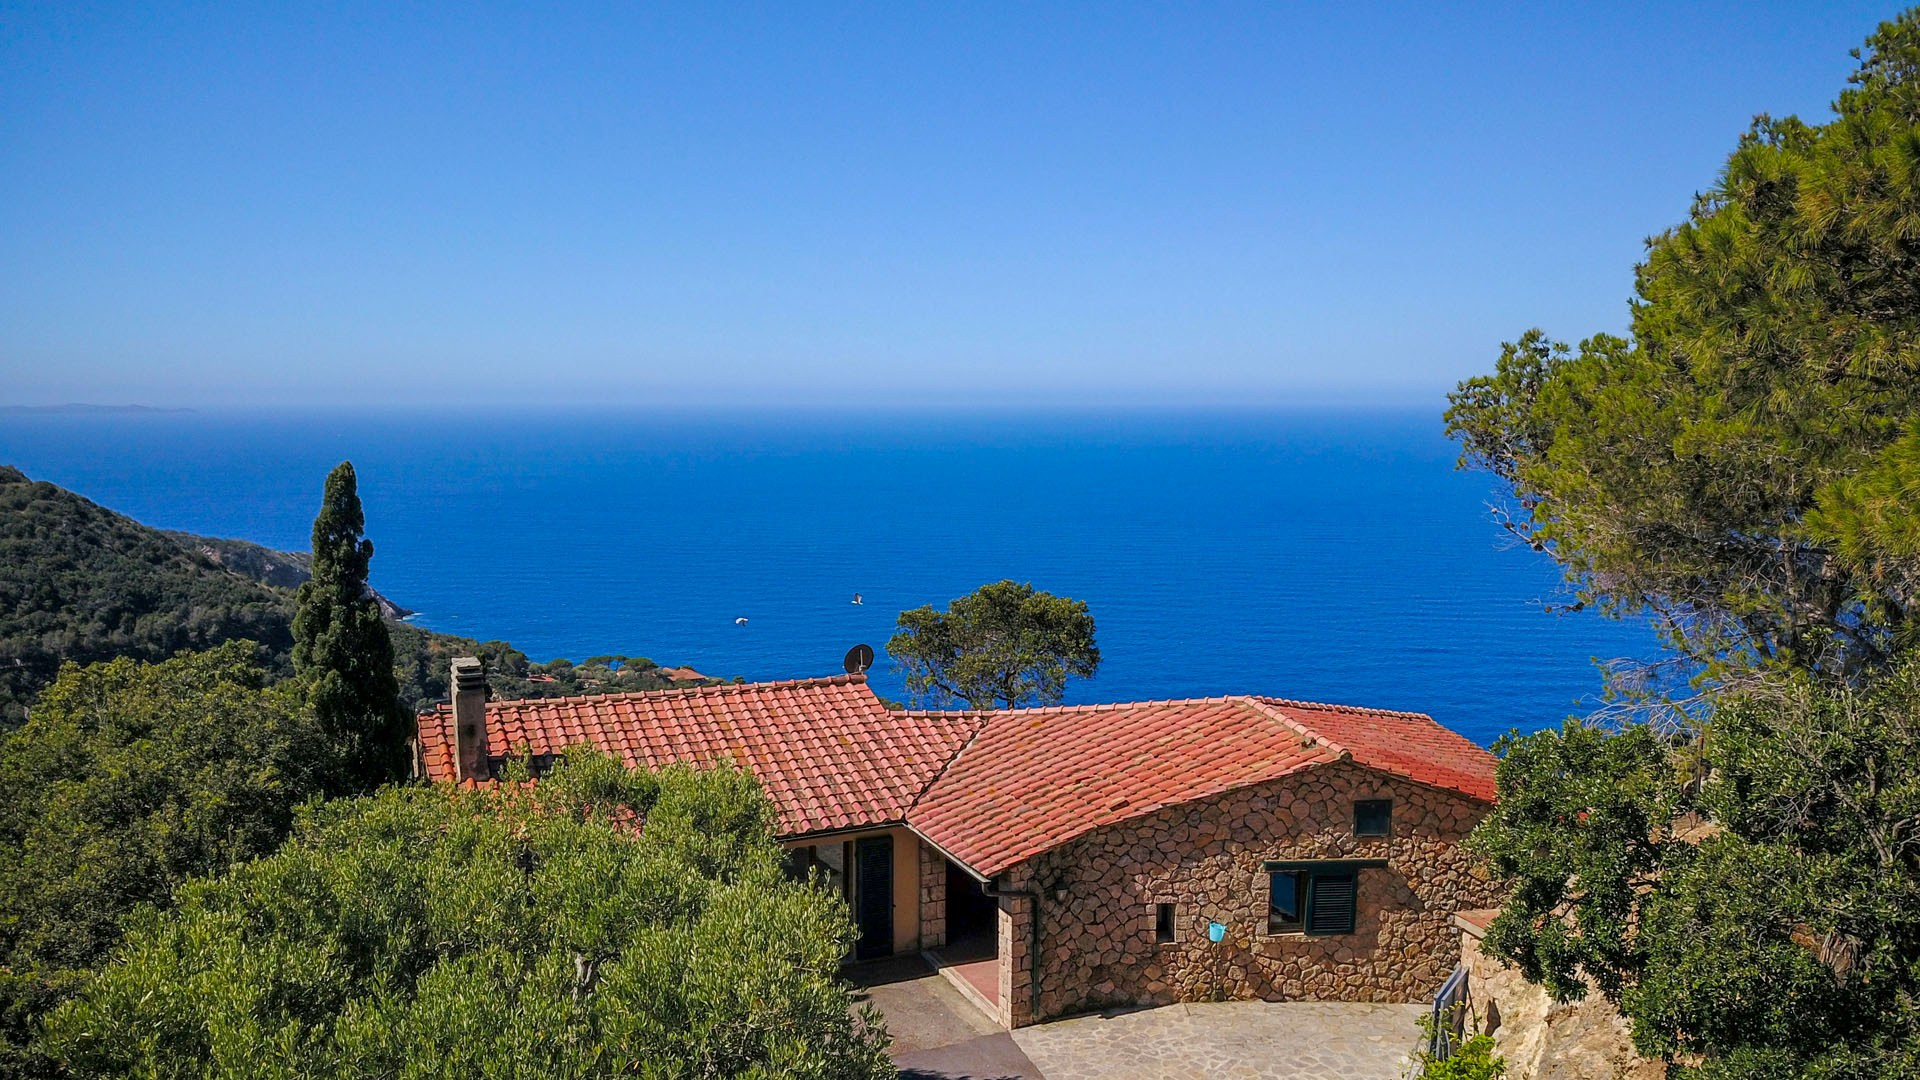 LUXURY VILLA FOR SALE ARGENTARIO, TUSCANY